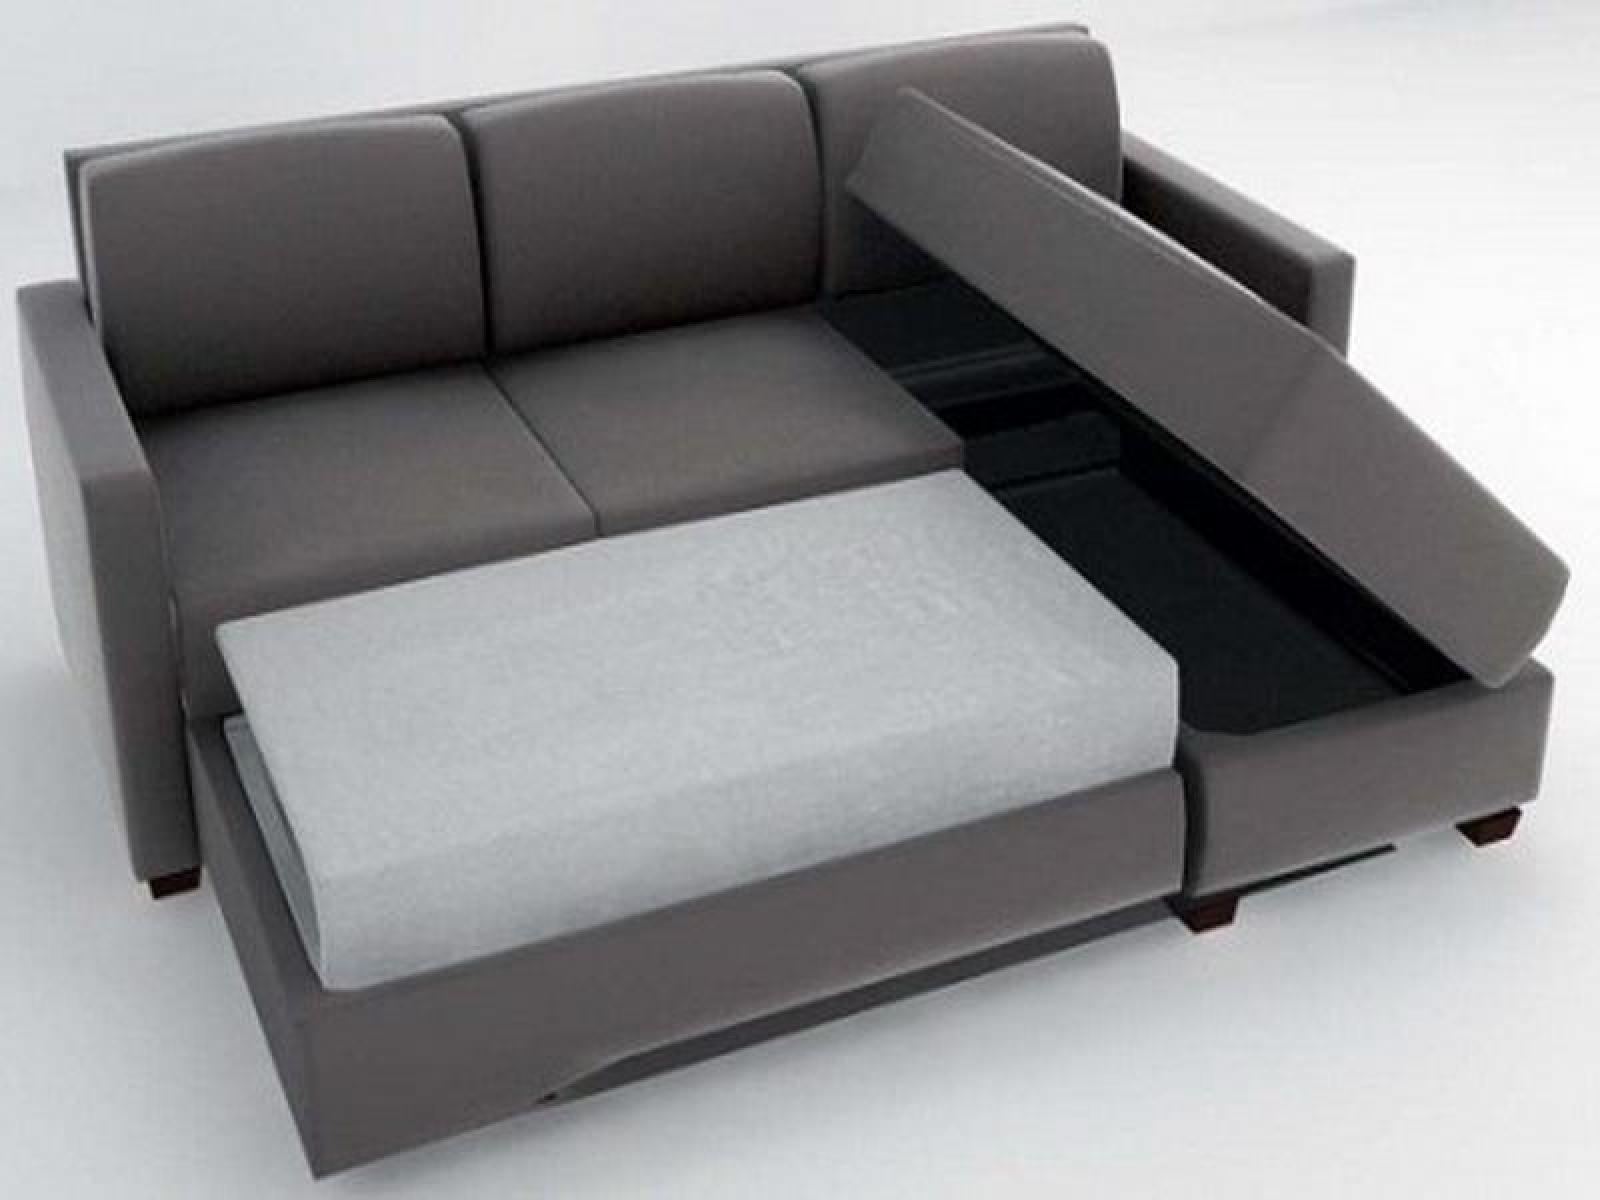 mini sofa bed singapore plush phoenix review 20 best collection of beds ideas